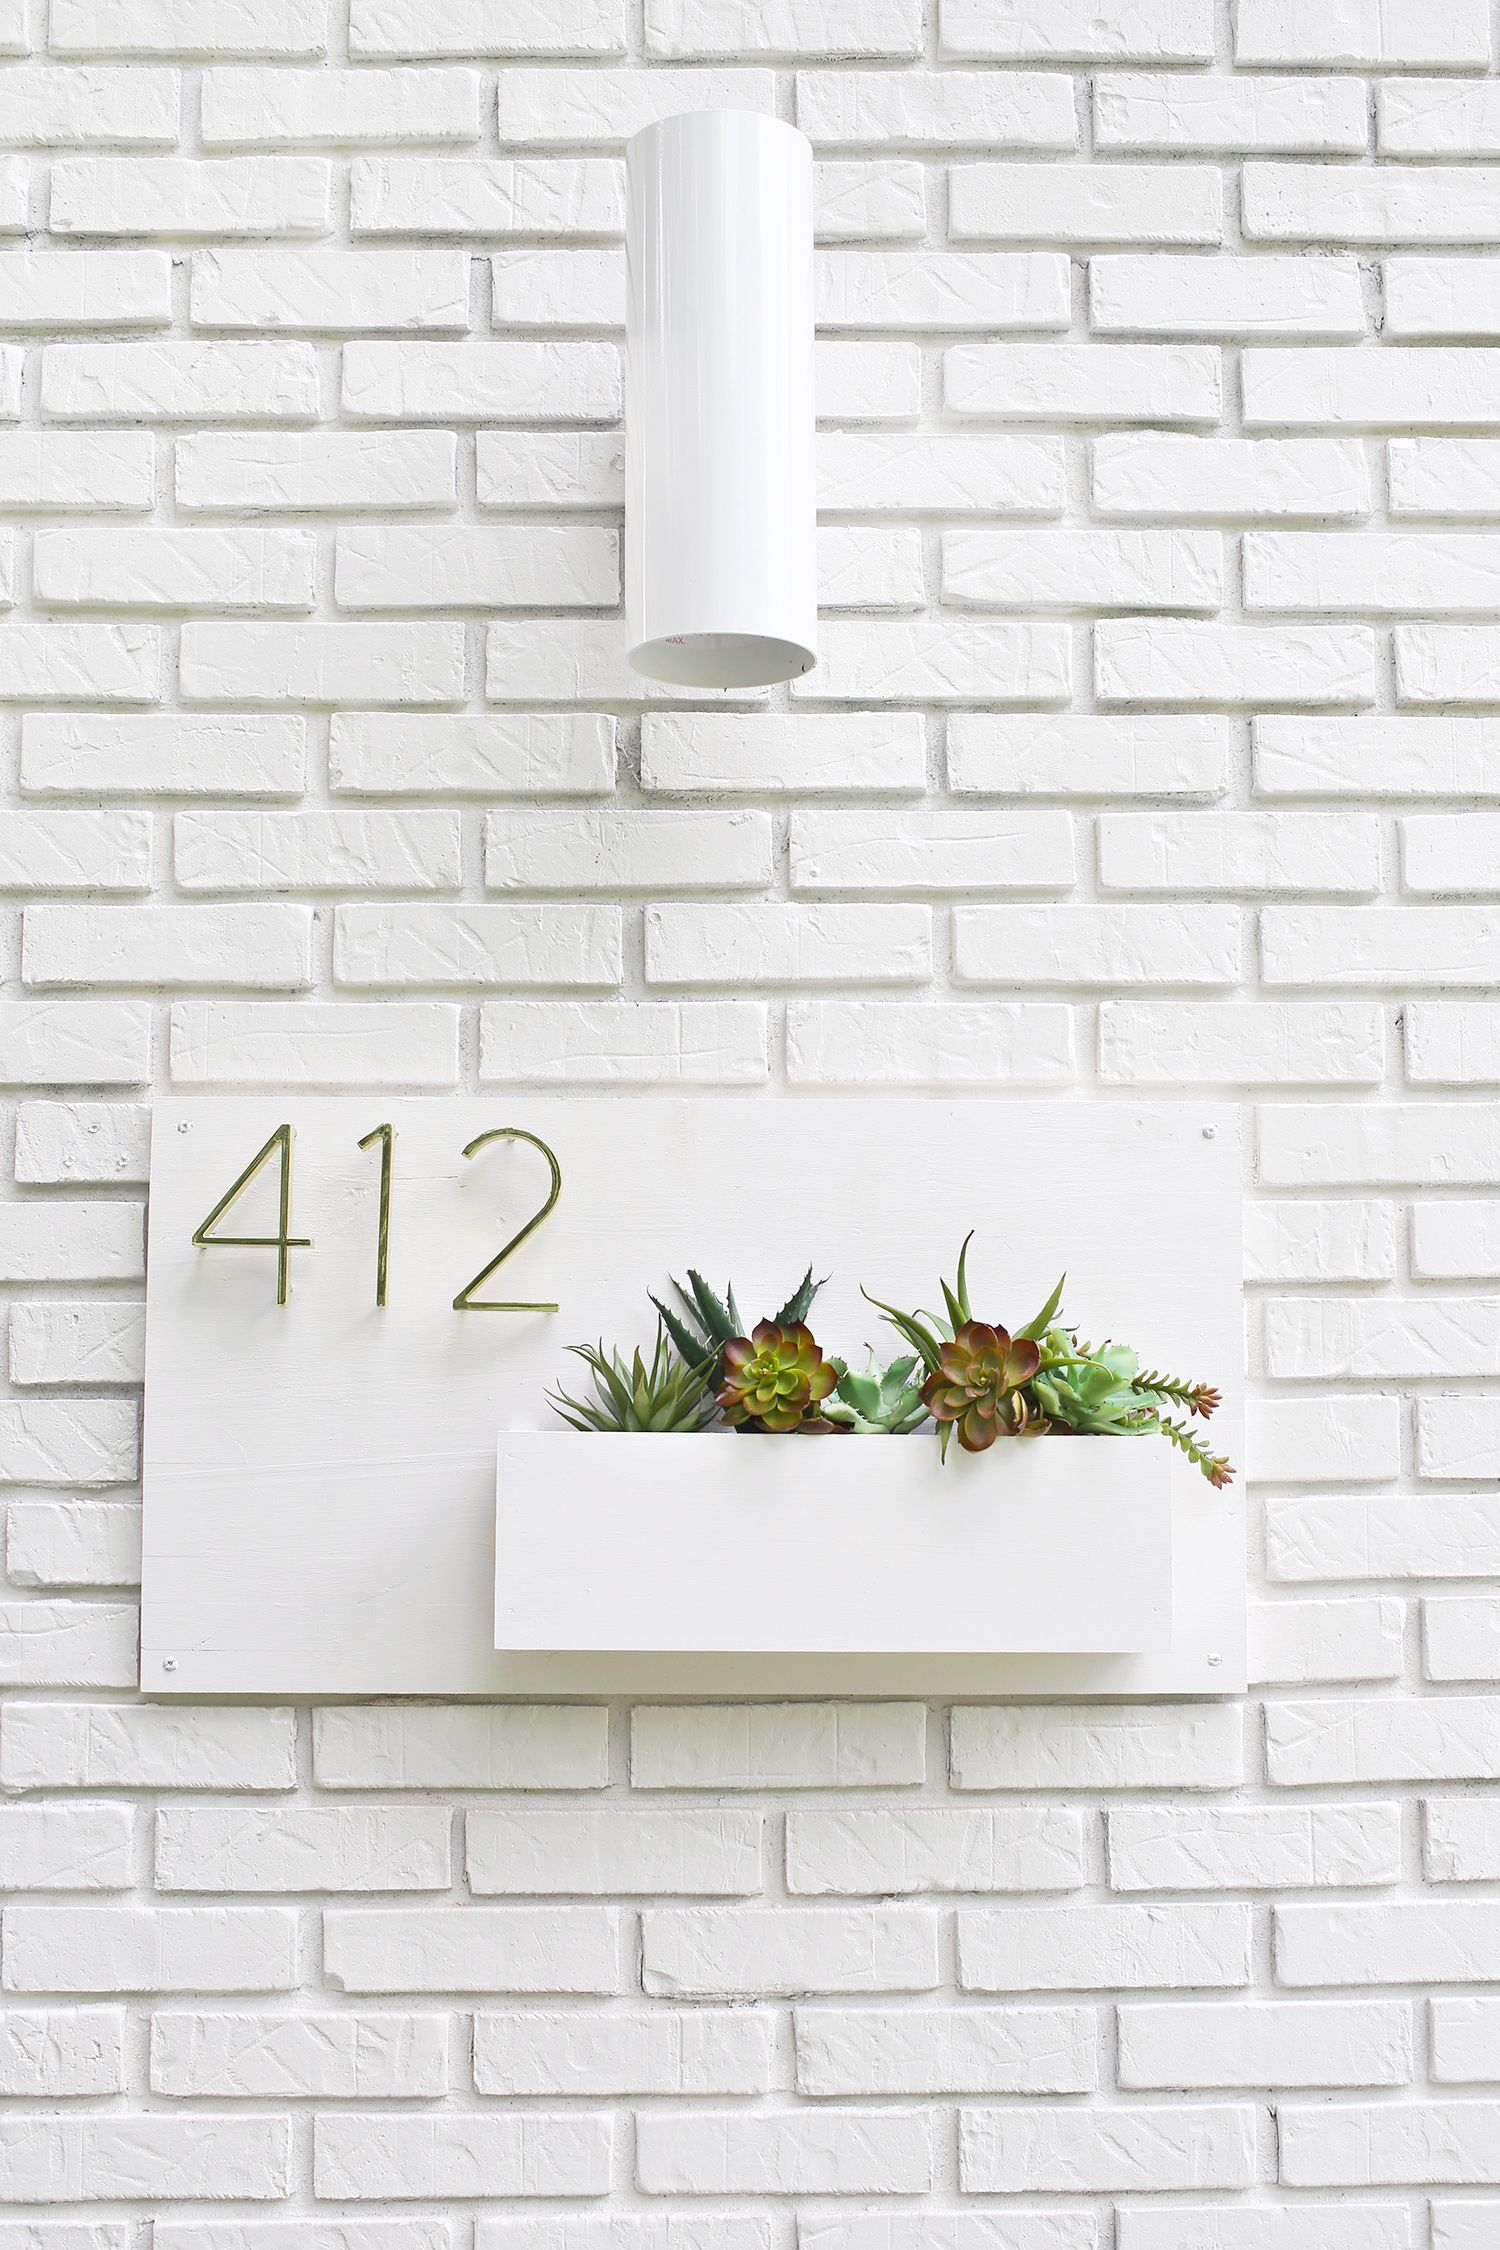 Modern address planter home improvement projects house numbers modern diy house numbers midcentury